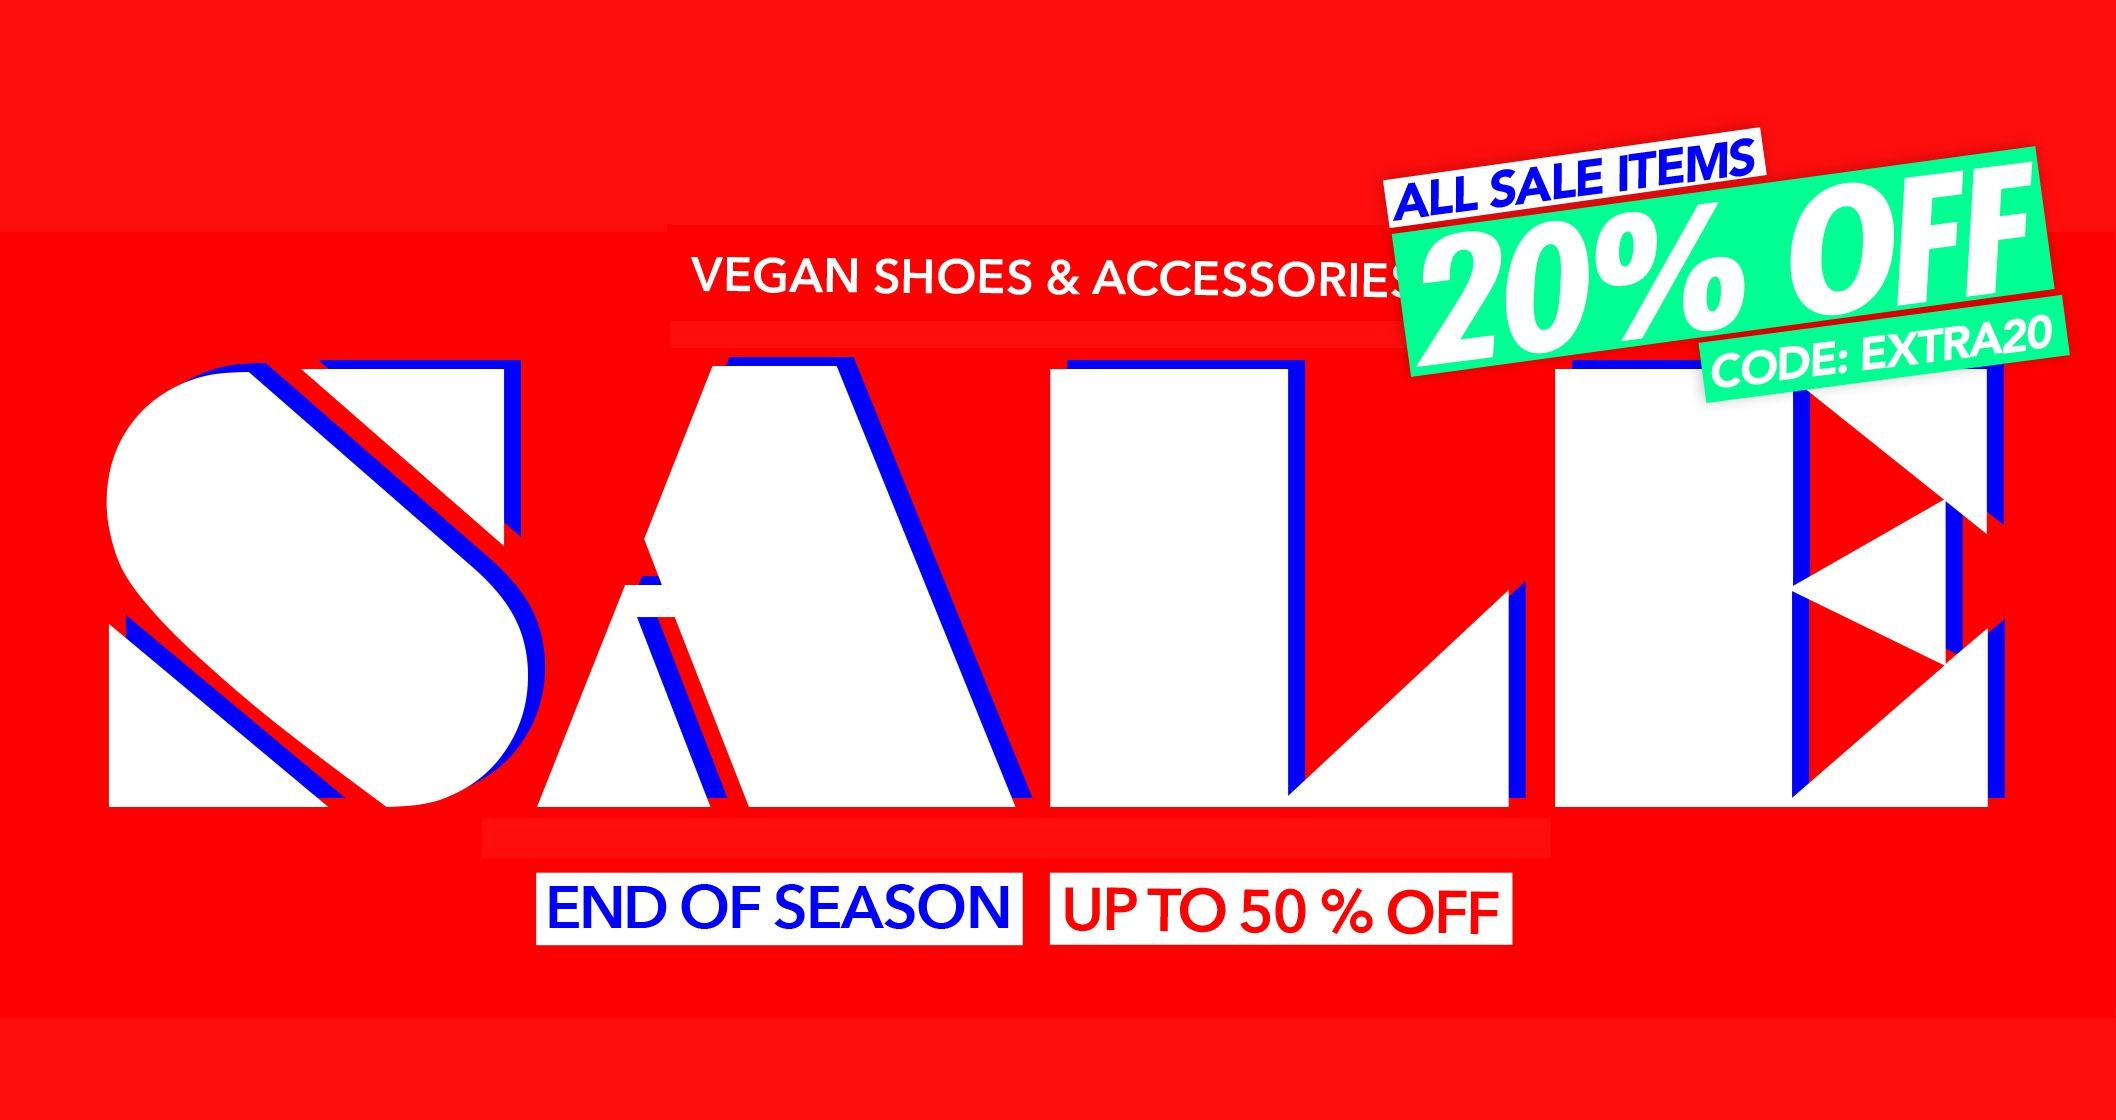 END OF SEASON | Vegan shoes on sale | Up to 50 % OFF vegan shoes and accessories